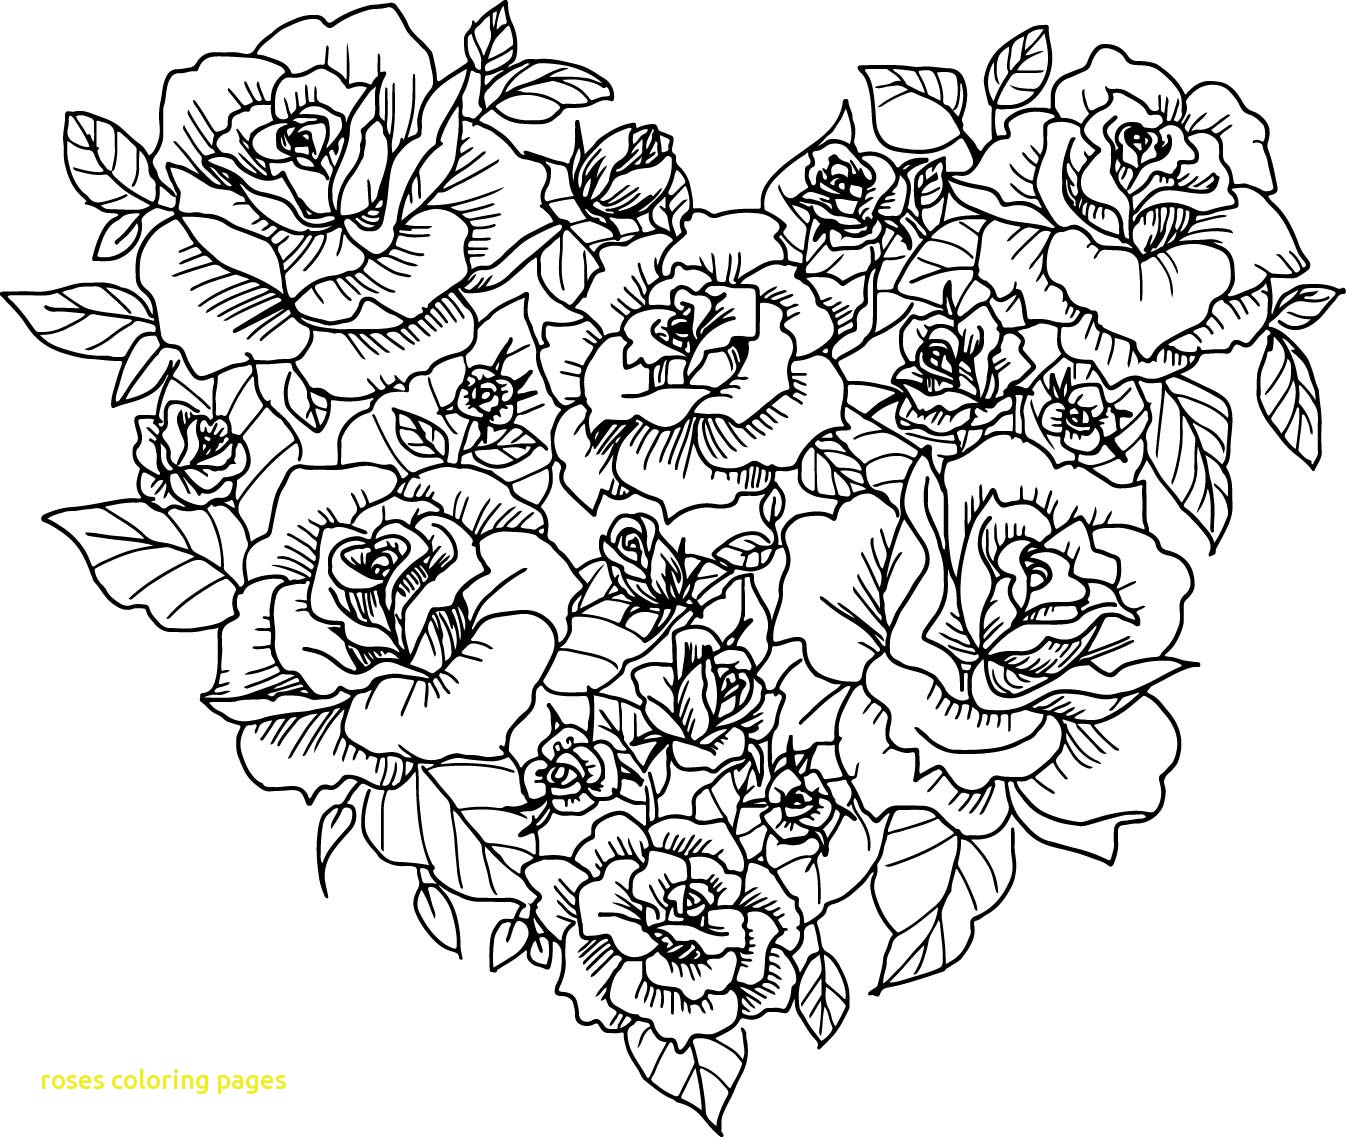 heart and roses coloring pages heart with roses drawing at getdrawings free download roses coloring pages heart and